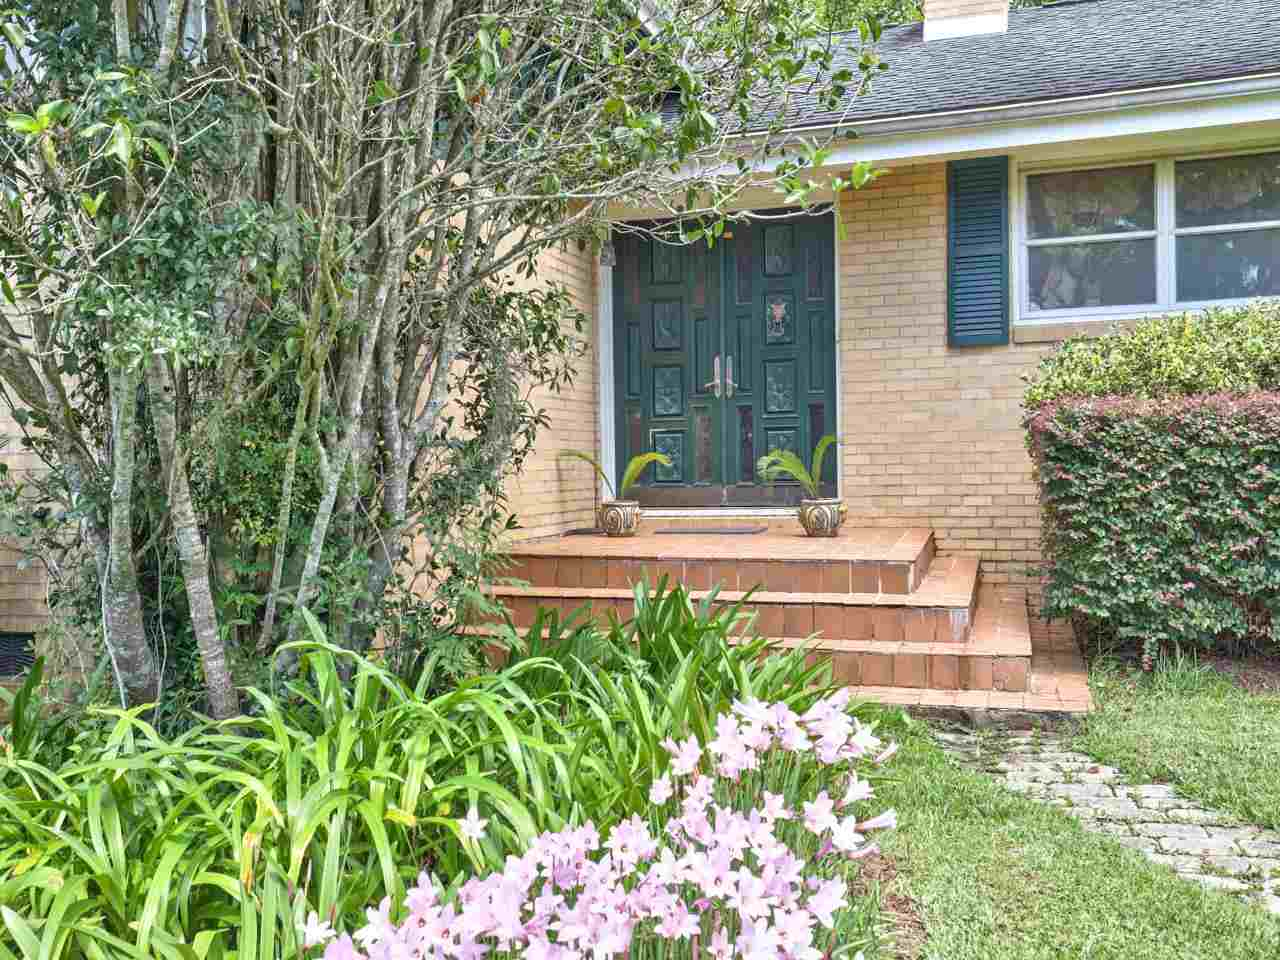 Detached Single Family, Ranch - QUINCY, FL